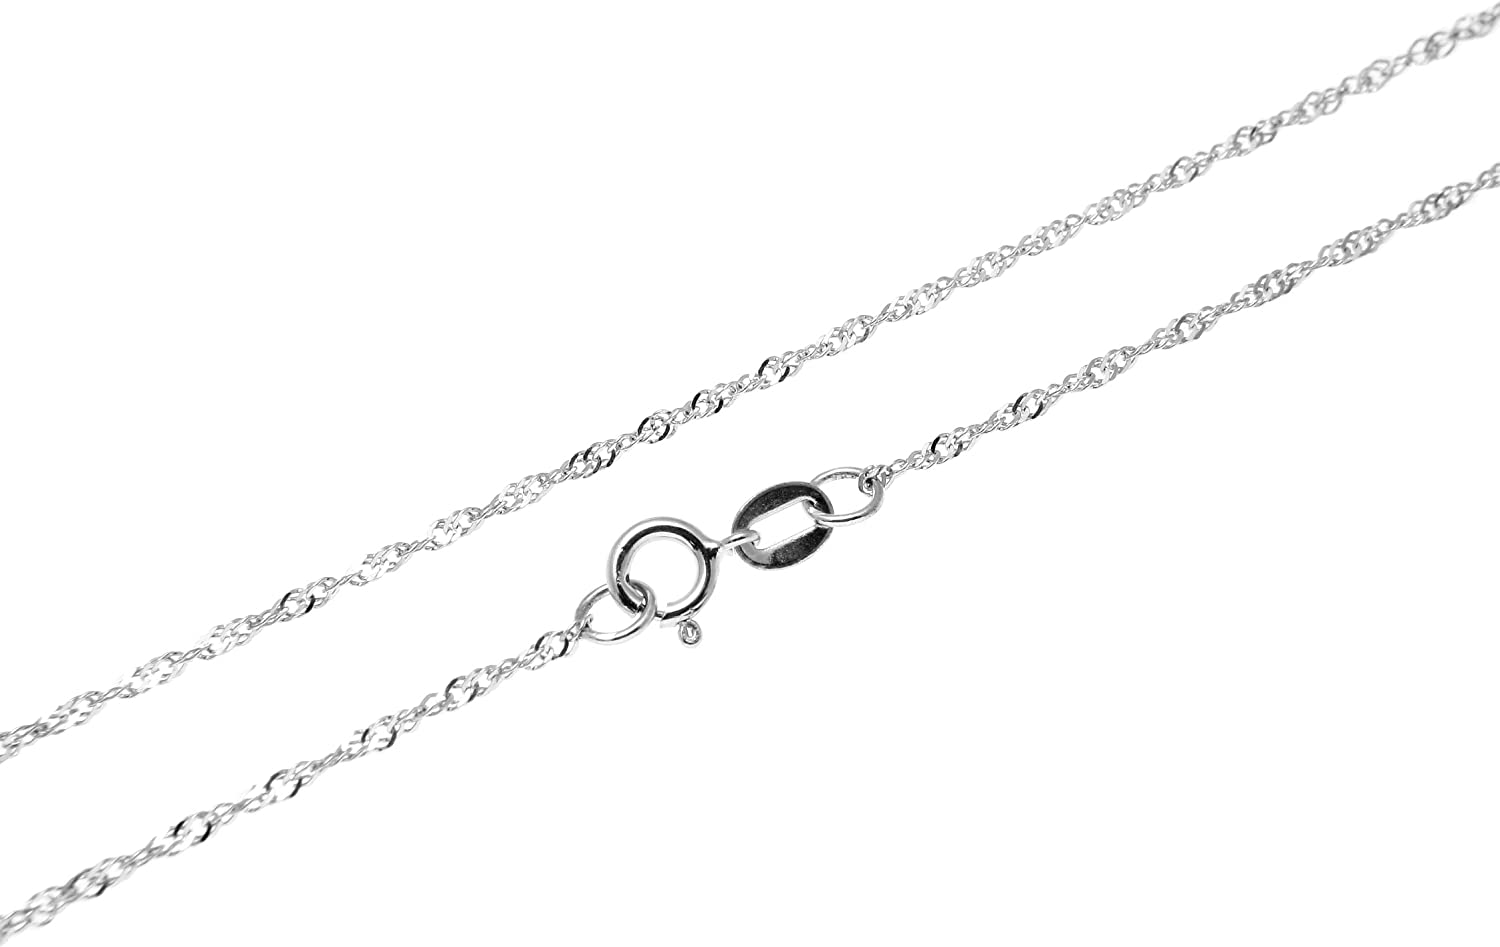 Arthur's Jewelry Product 14k Solid White 1mm Chain OFFicial shop Gold Singapore Neckla